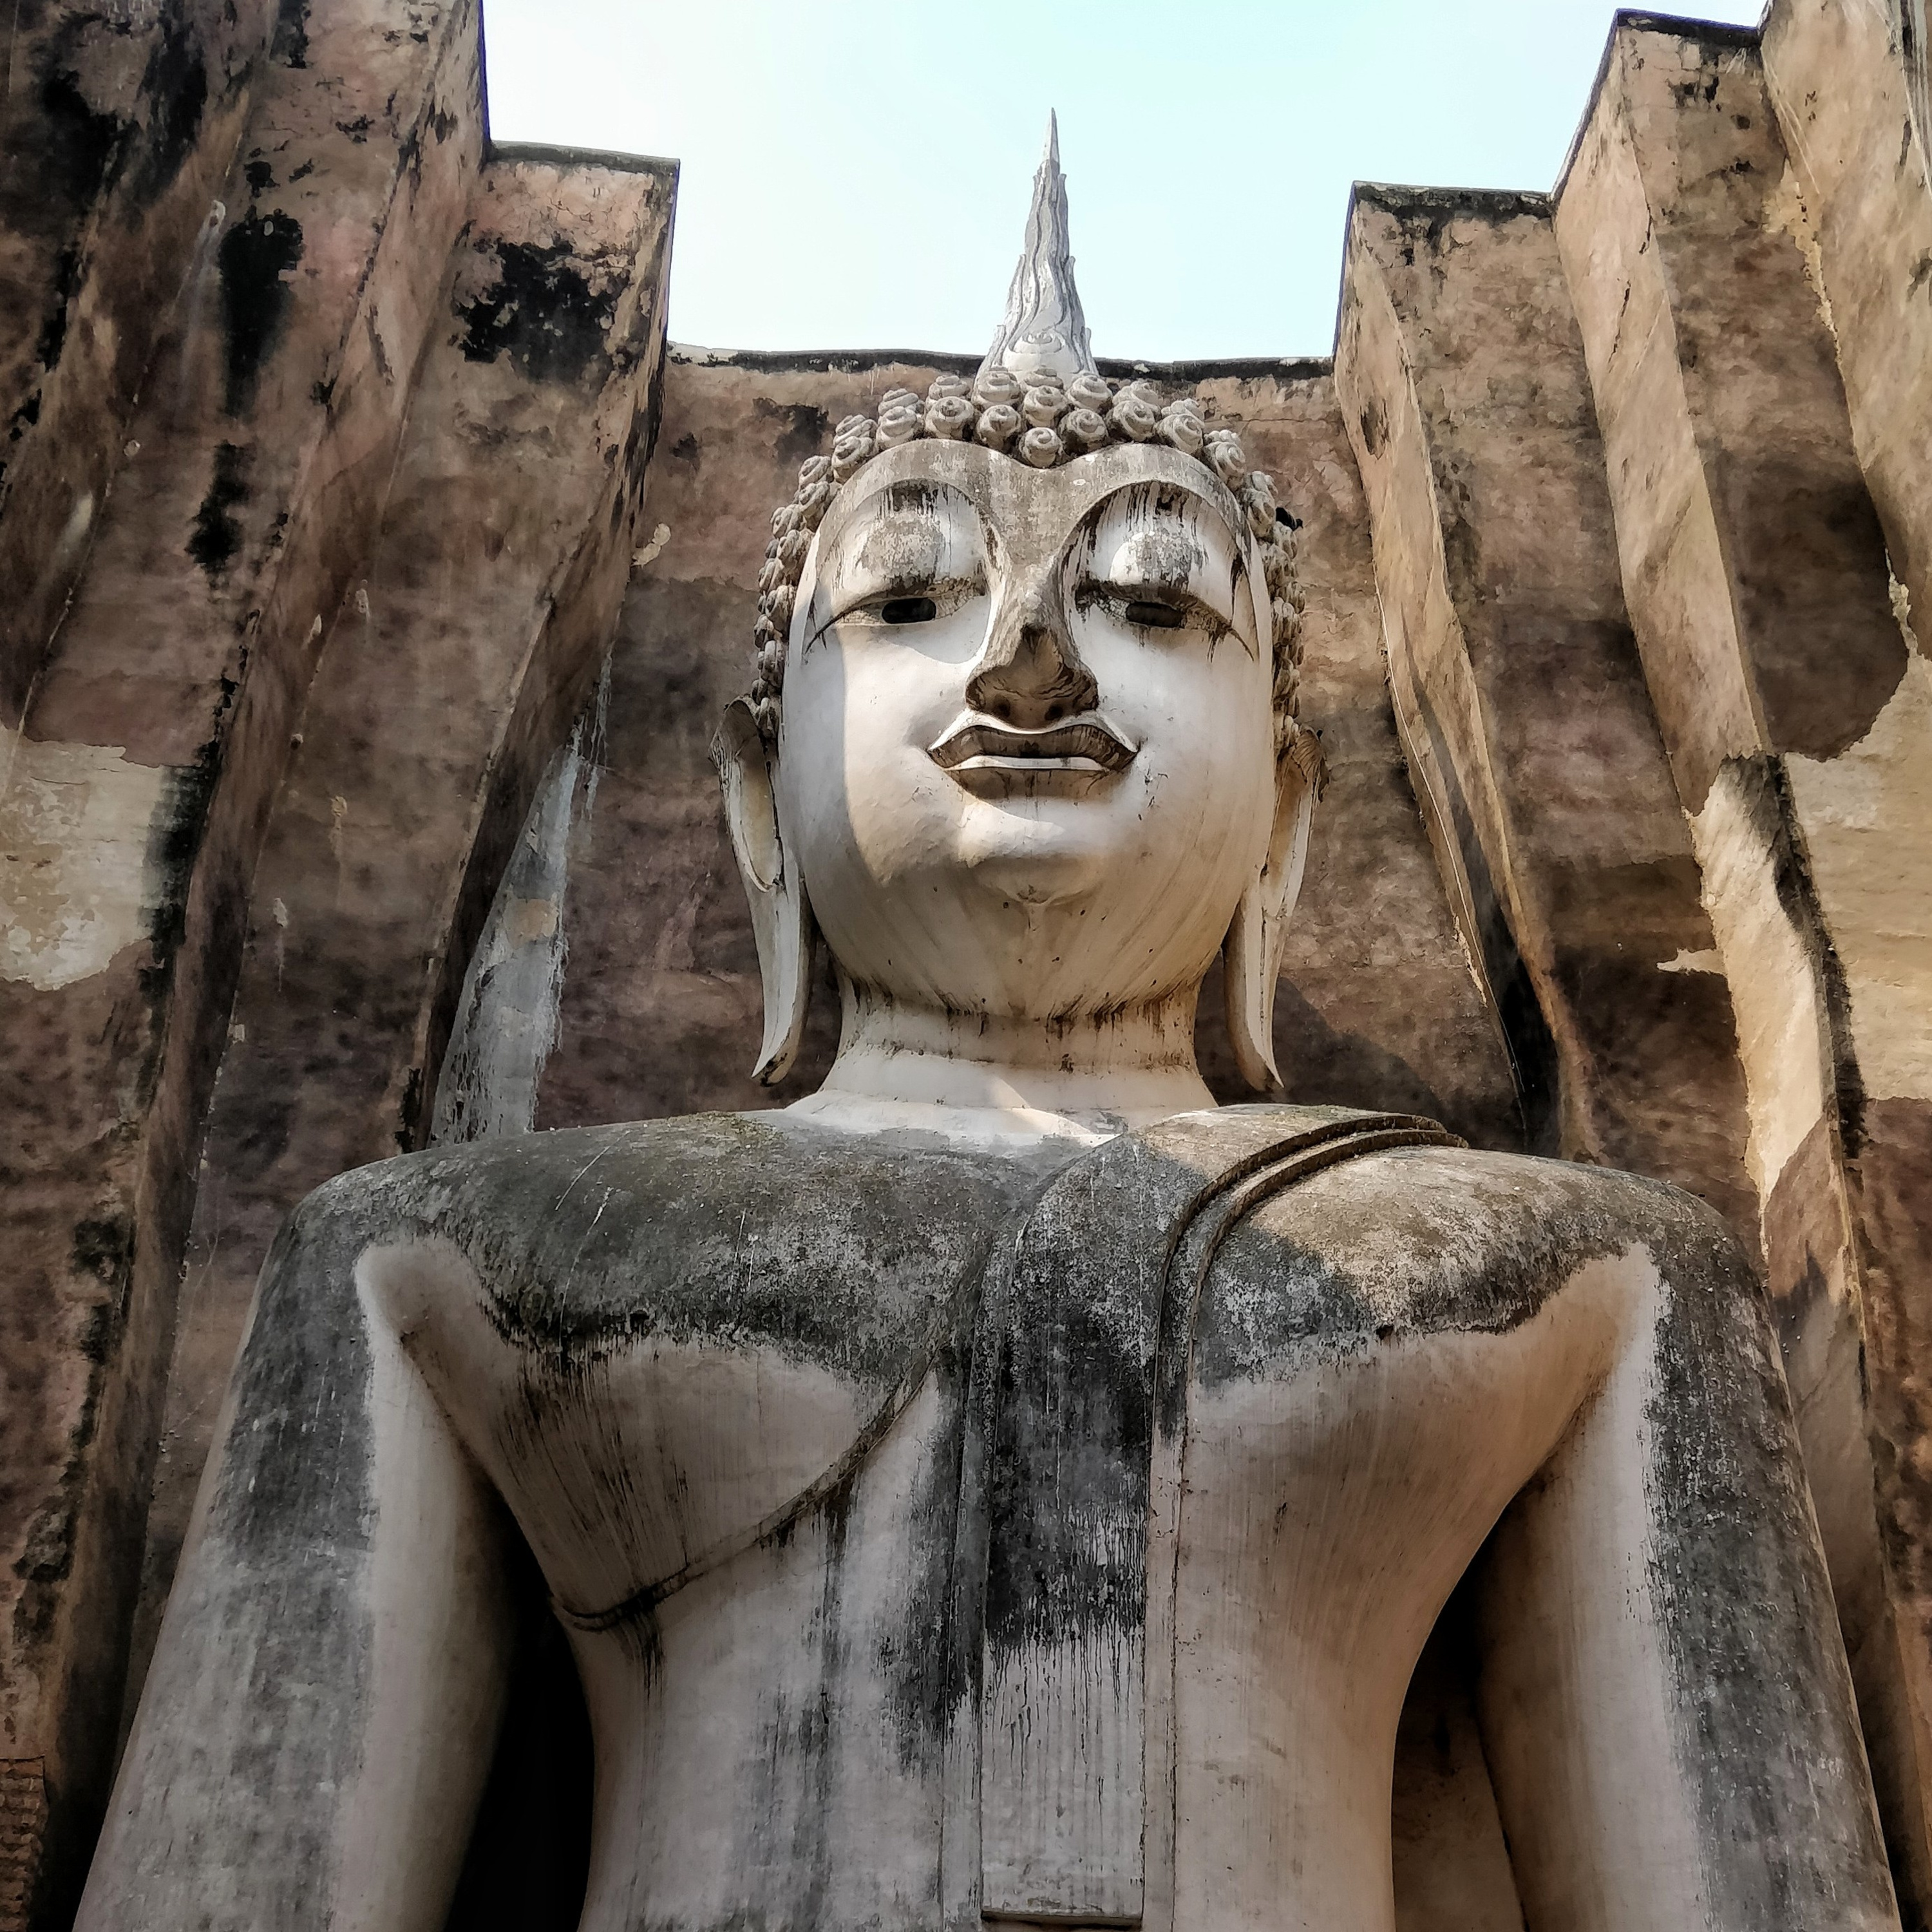 Recollections from my chat with a Thai Monk about Jainism